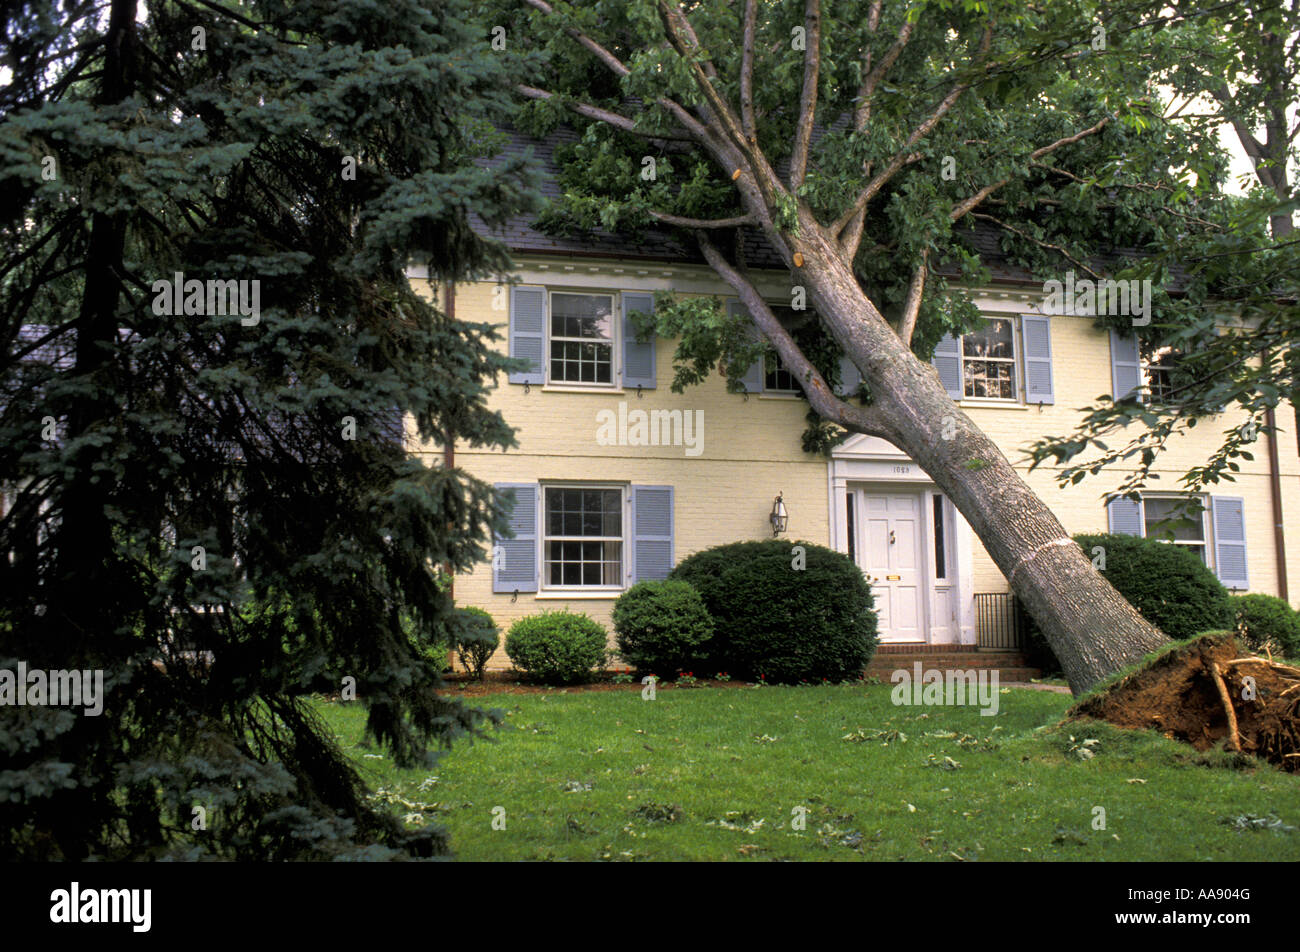 A tree falls on a home after a powerful Summer storm Maryland USA Stock Photo